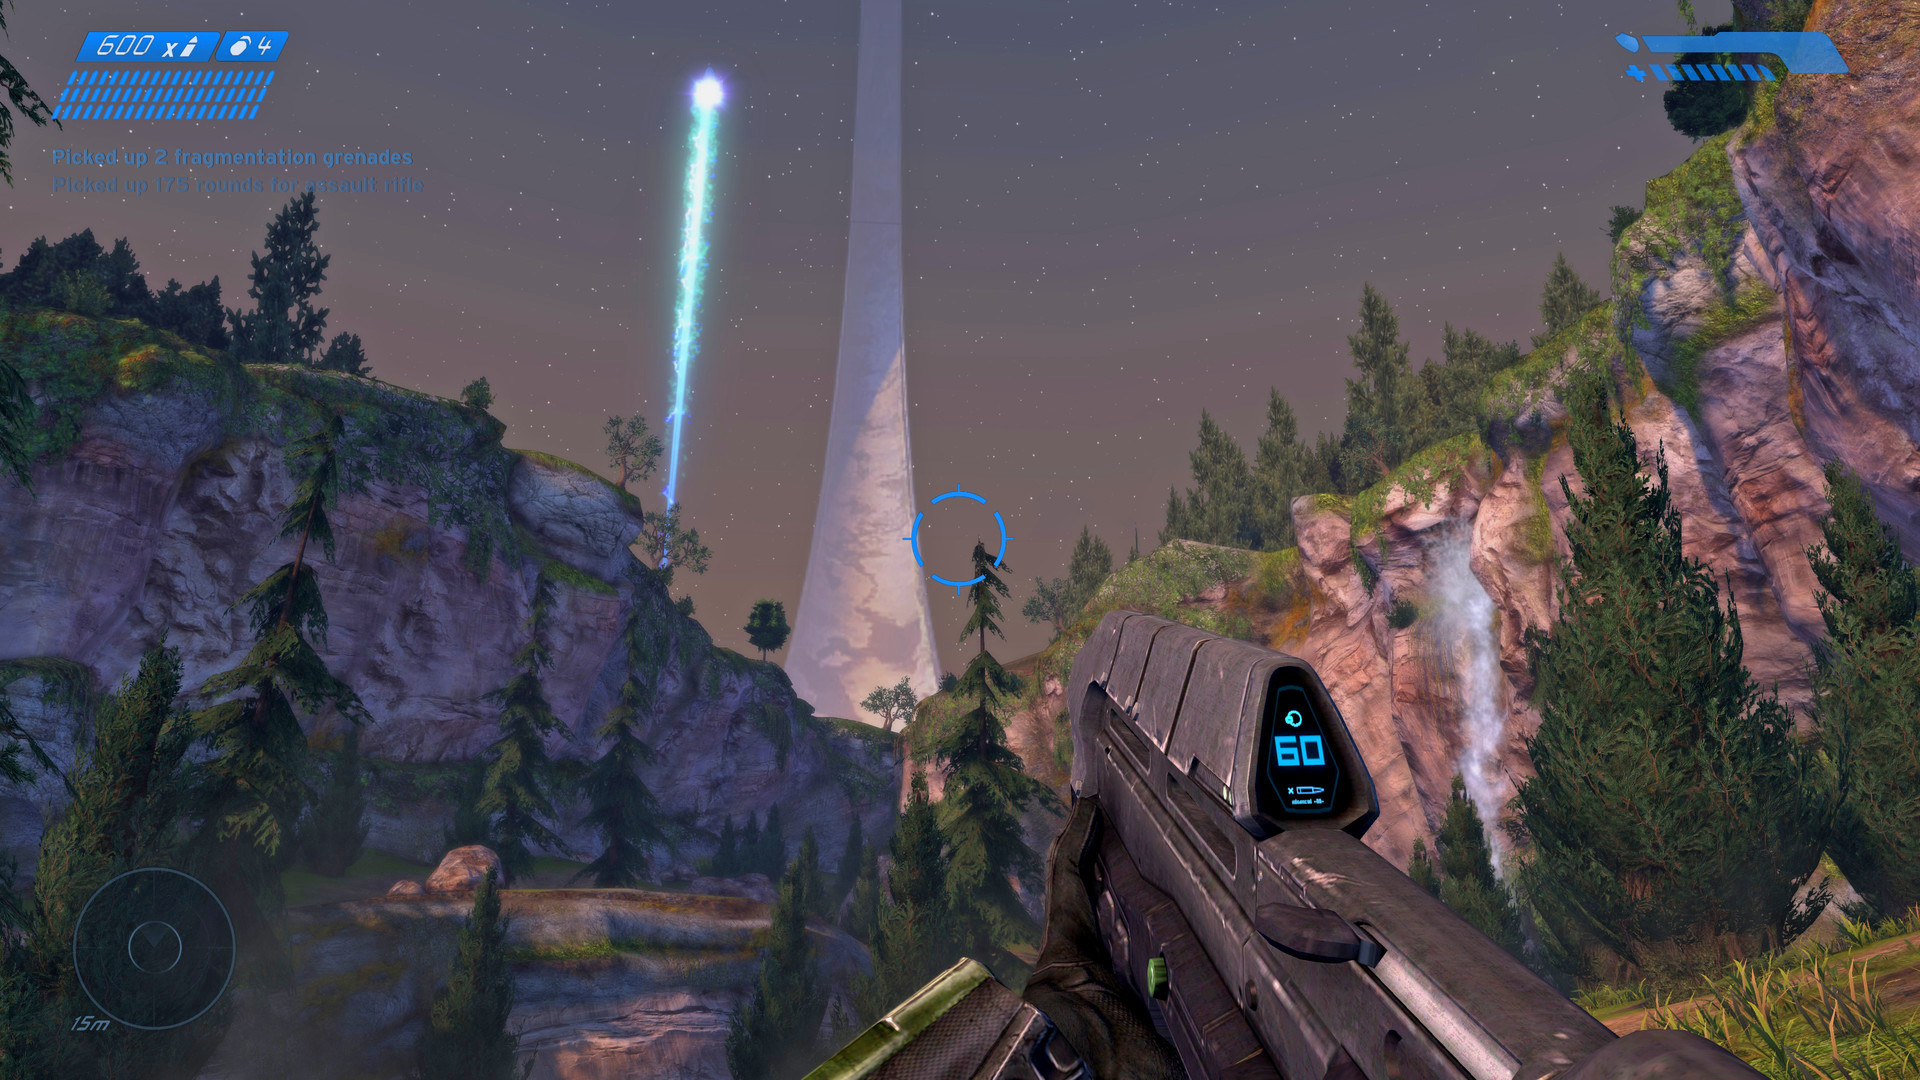 A view from first-person mode in a classic map, with the player armed with a battle rifle.